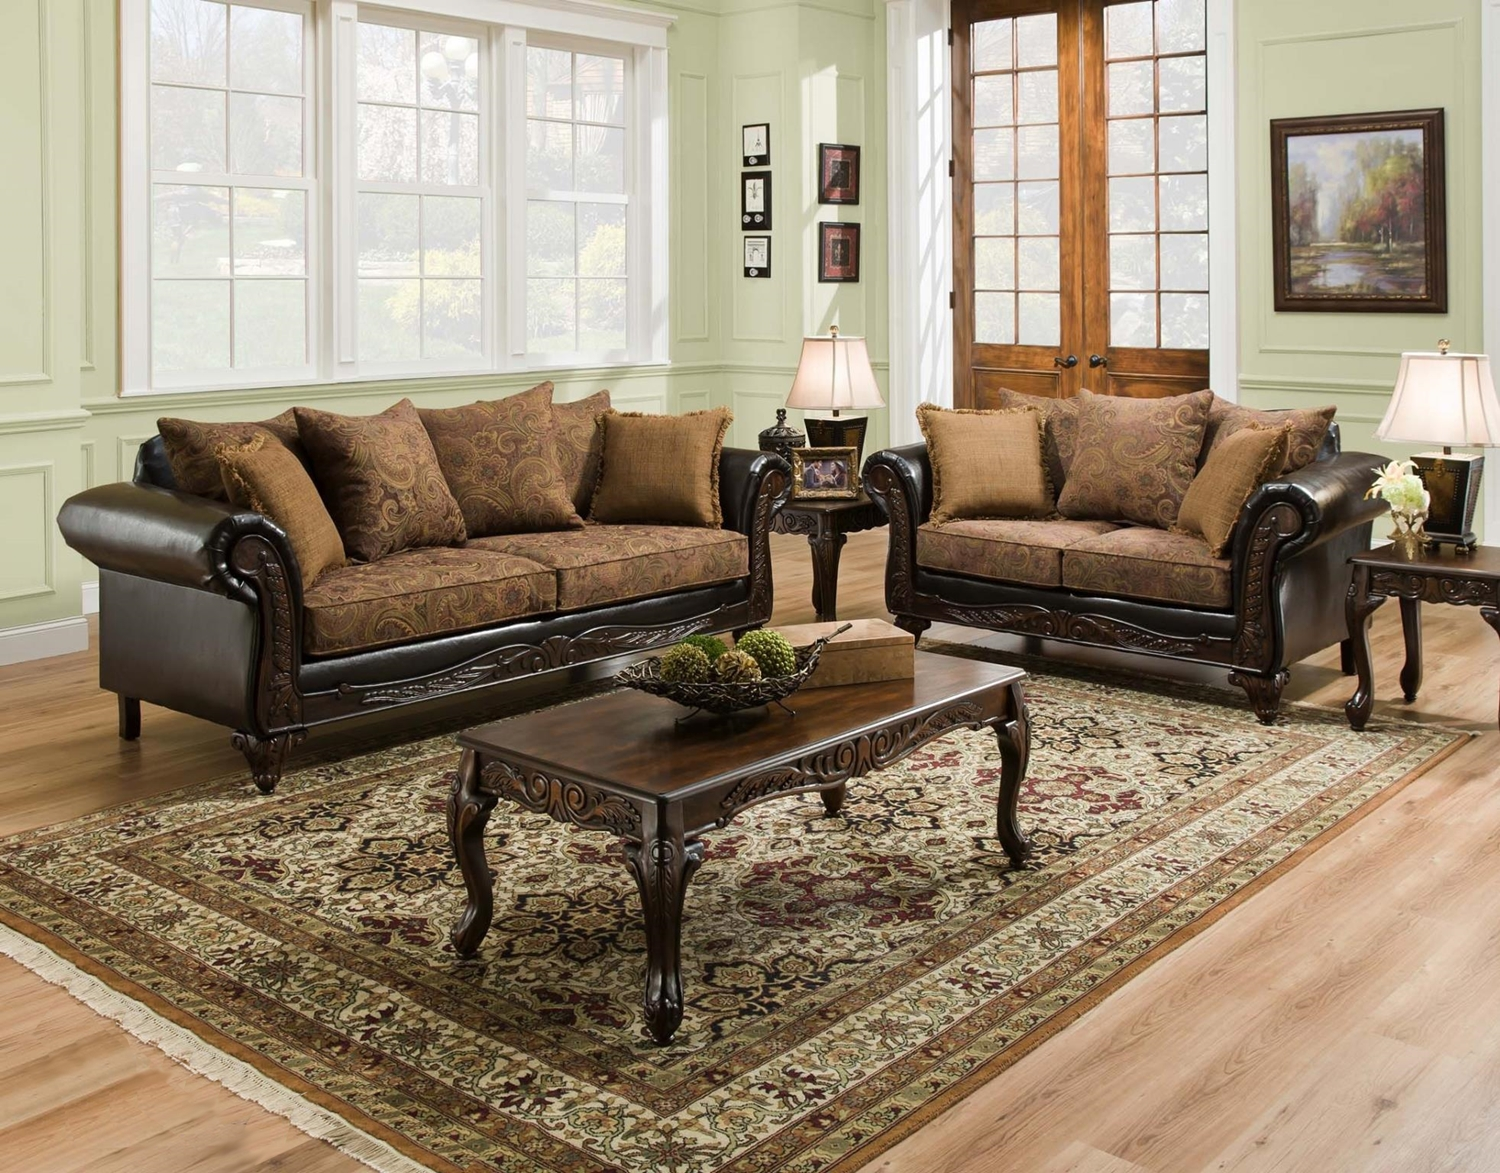 San Marino Traditional Living Room Furniture Set W/ Wood